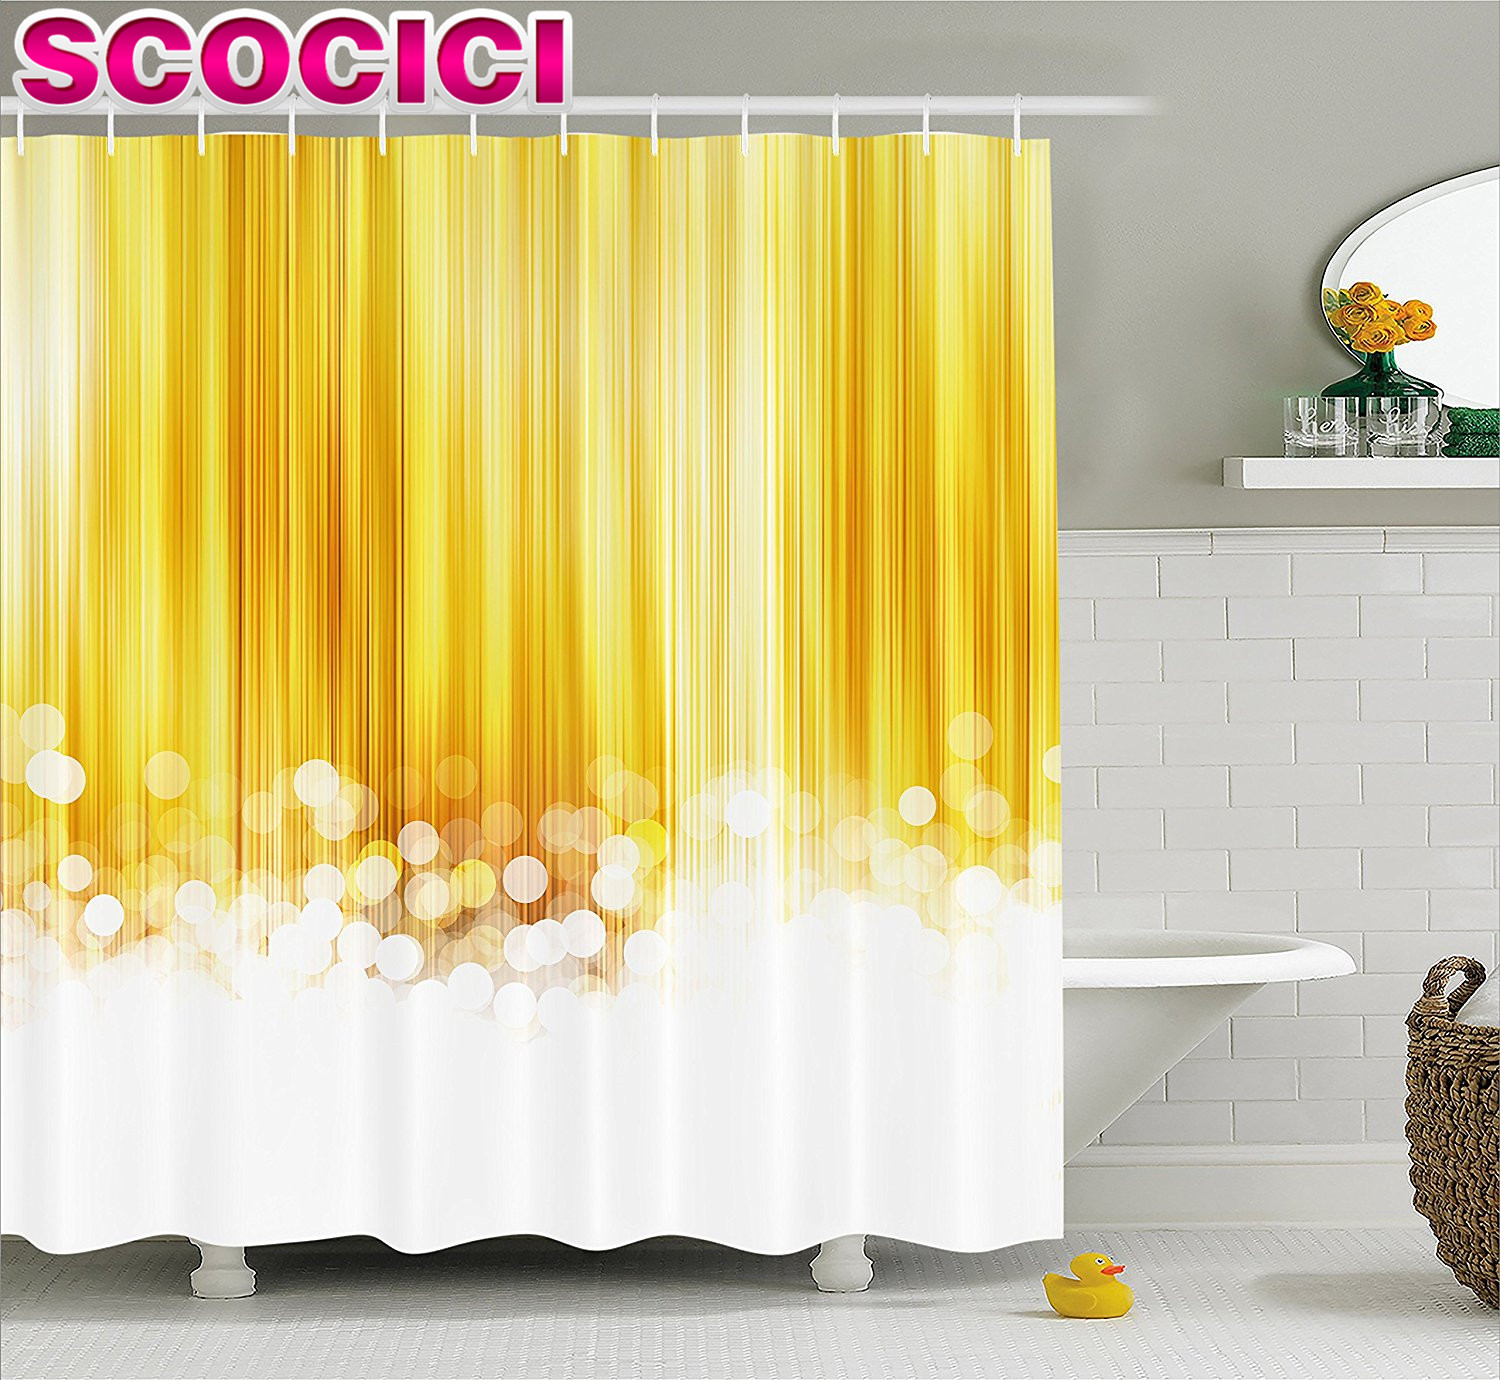 Gold And White Striped Shower Curtain Charming Ideas Gold And